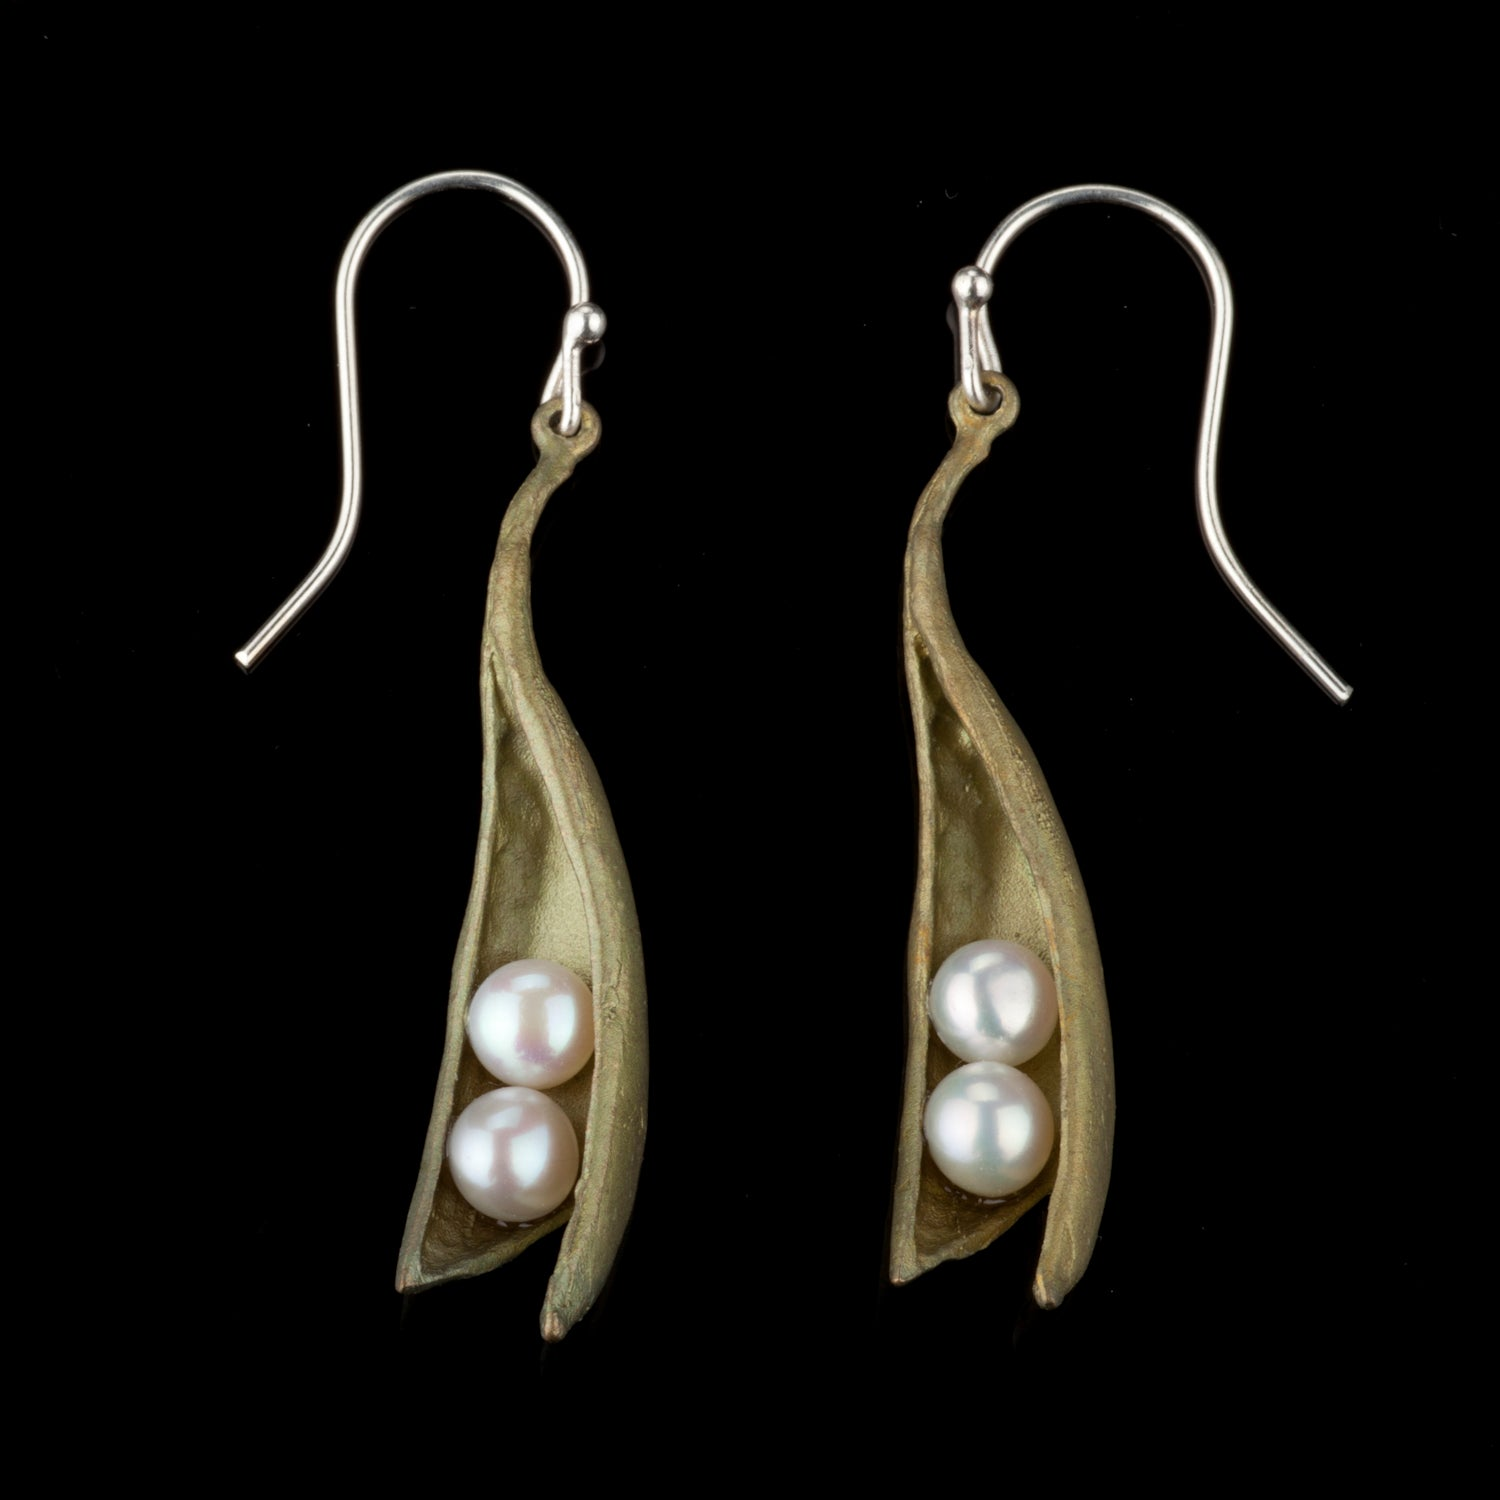 Pea Pod Earrings - Drop